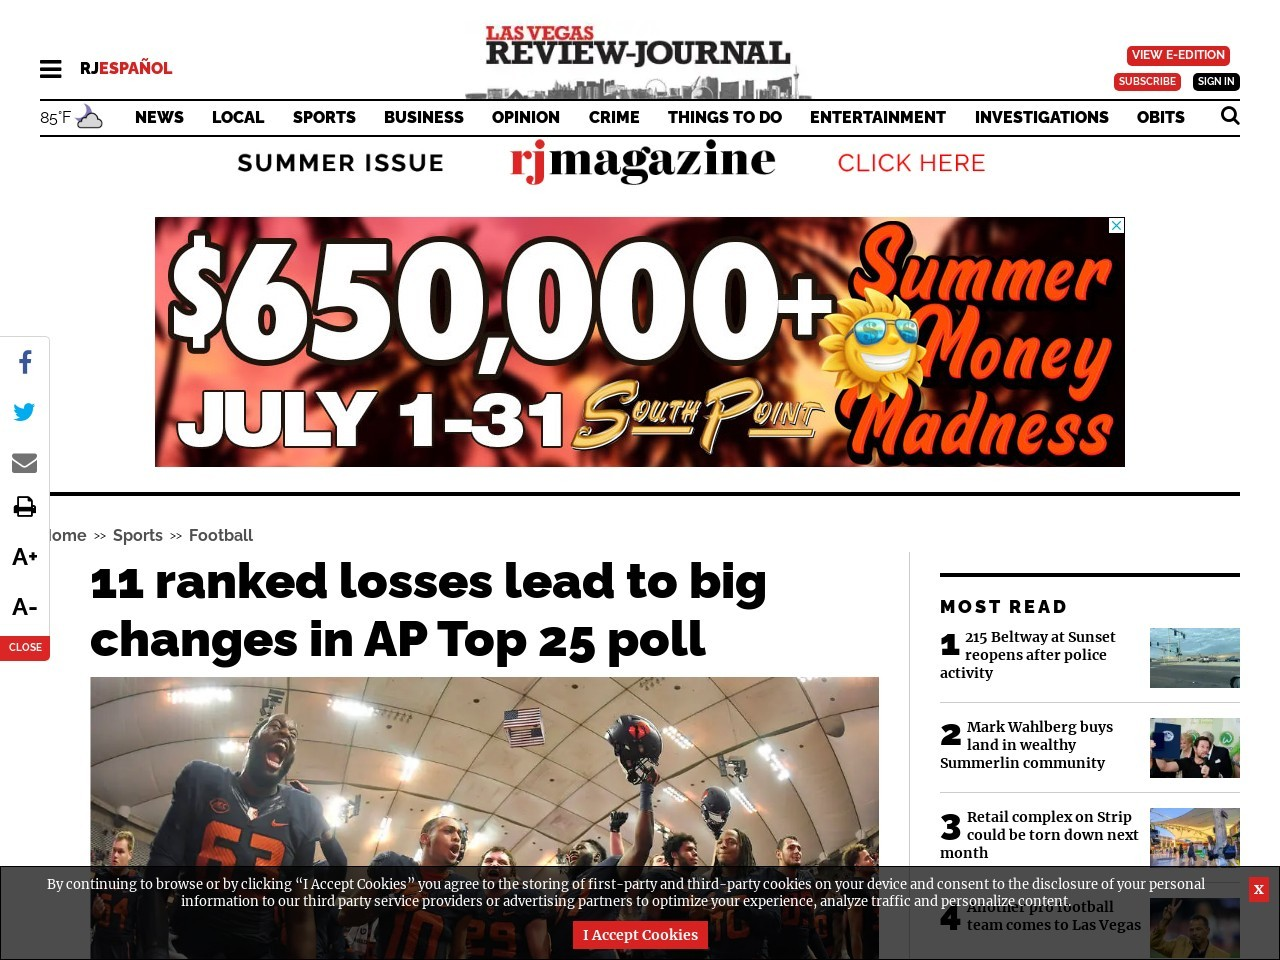 11 ranked losses leads to big changes in AP Top 25 poll